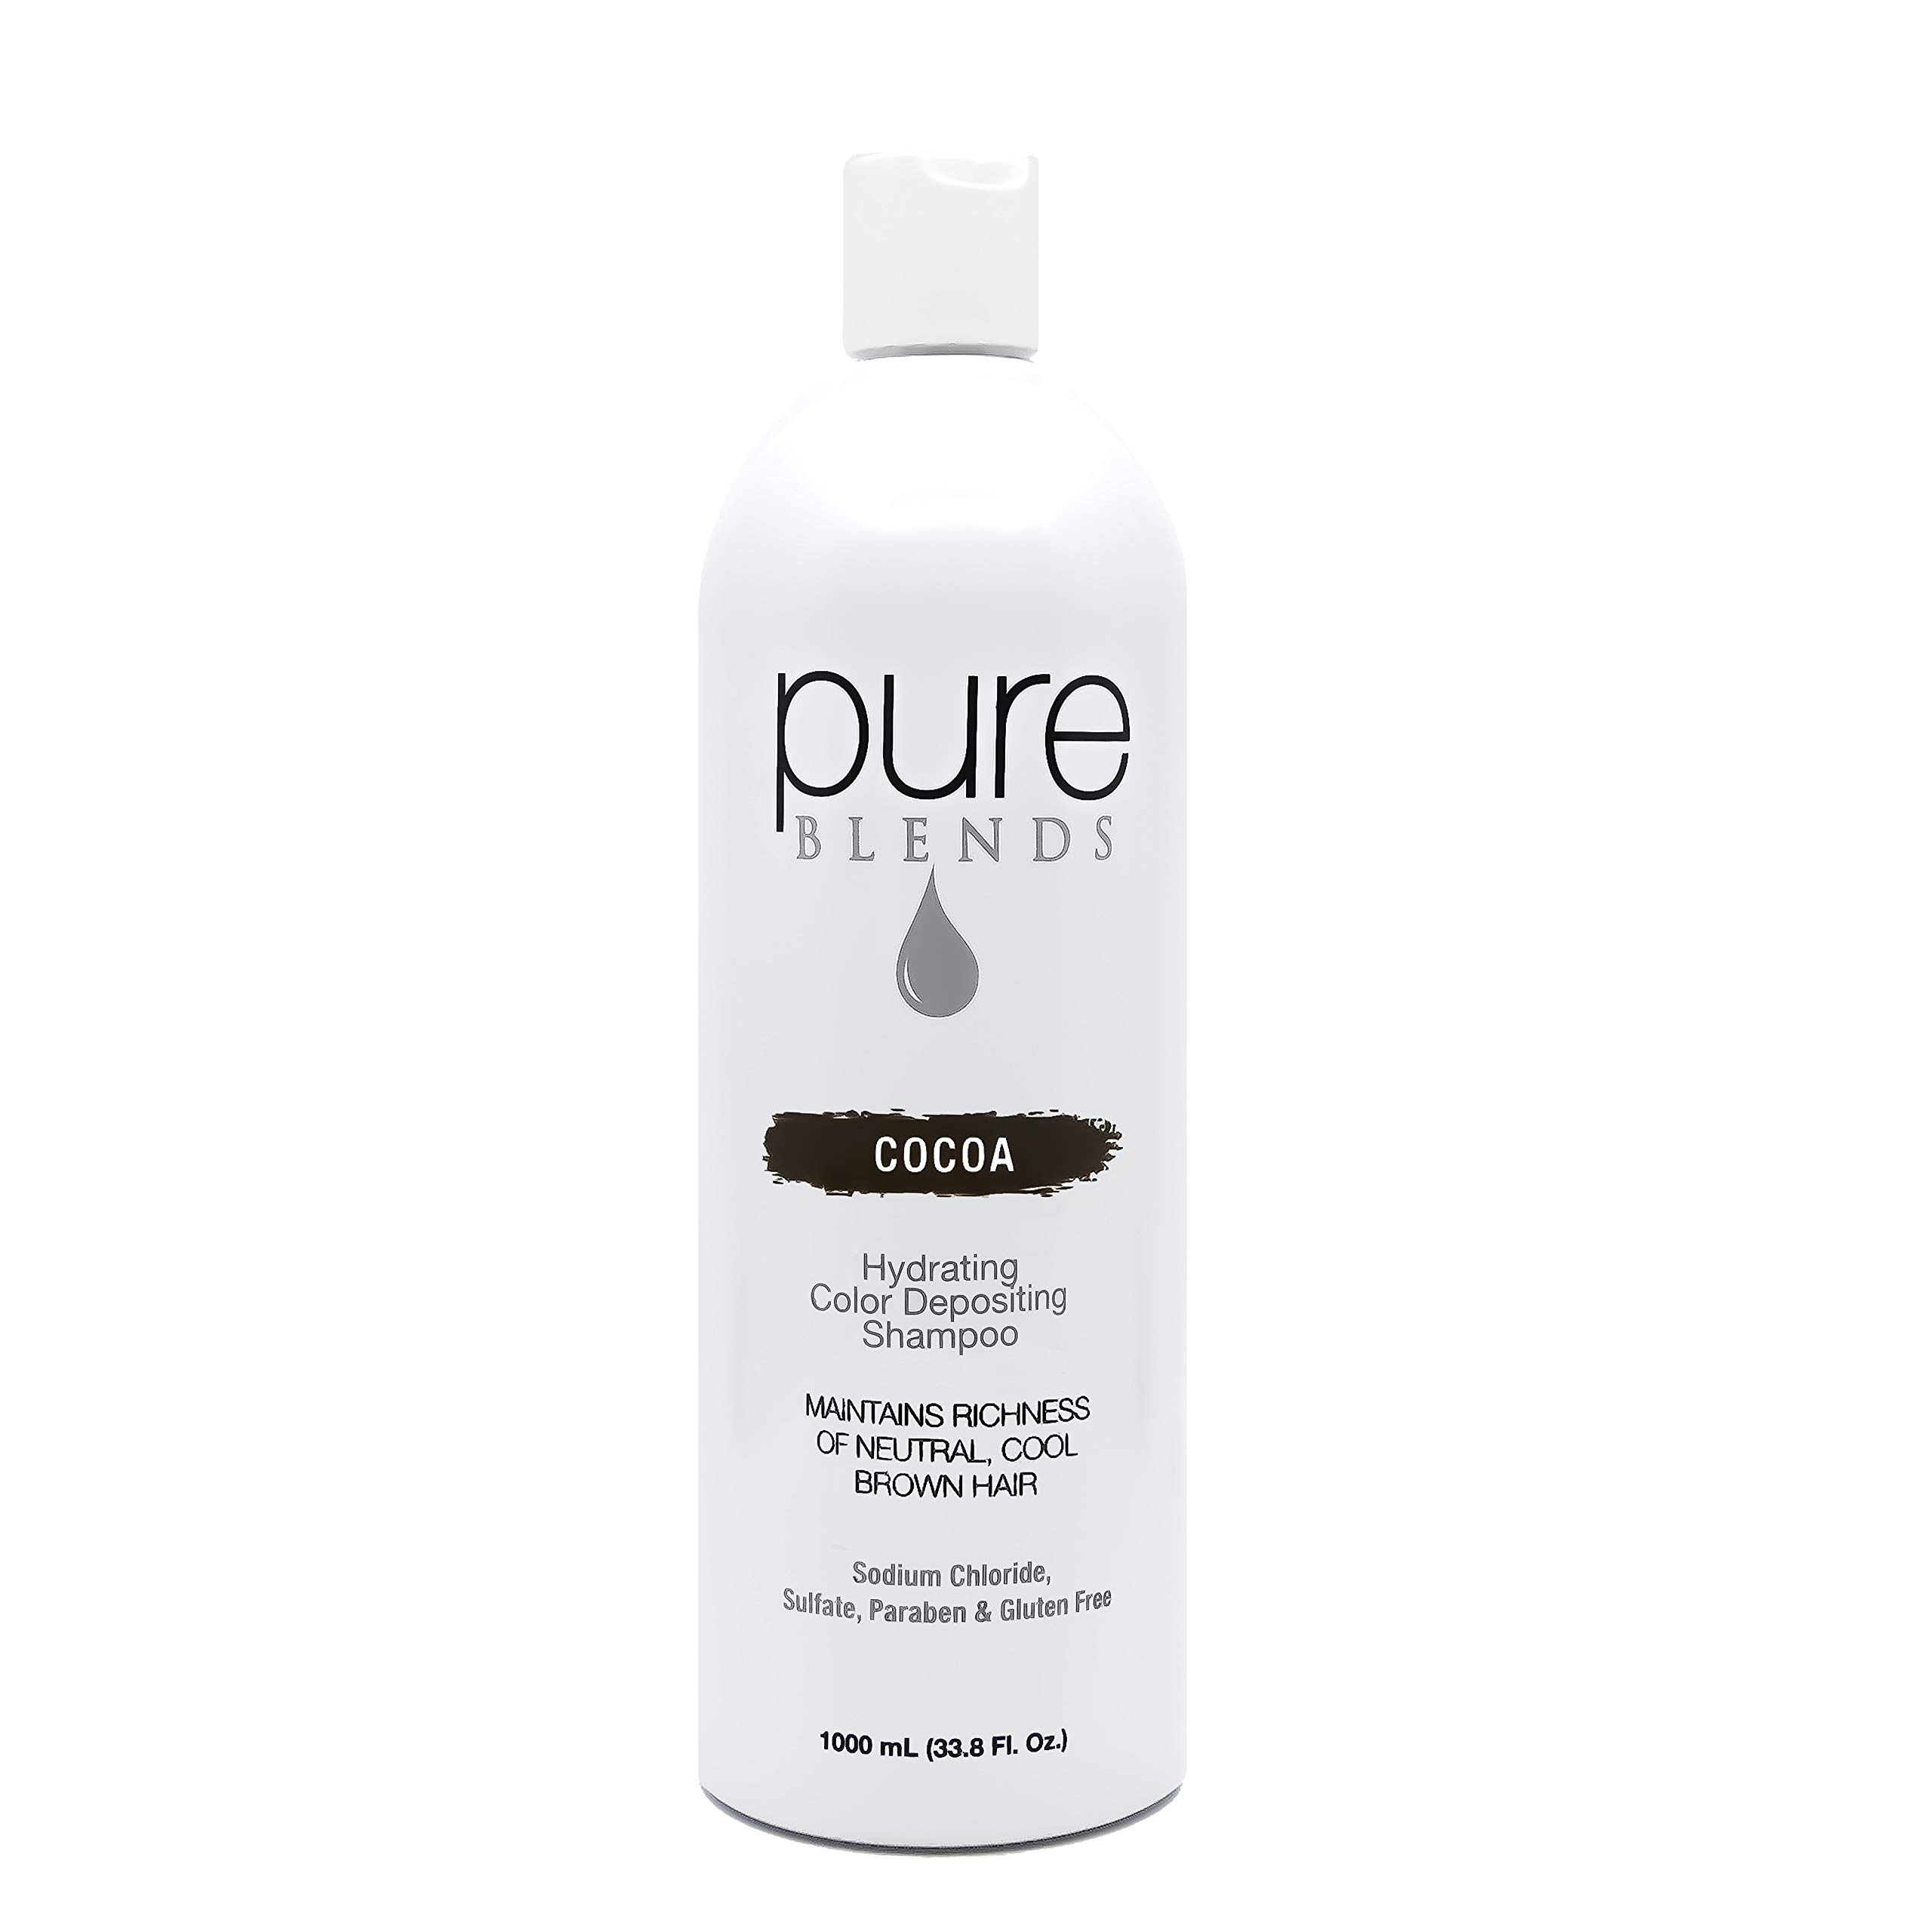 Pure Blends Hydrating Color Depositing Shampoo - Cocoa (Neutral Cool Brown Hair) 33.8 Ounce - Salon Quality by Pure Blends